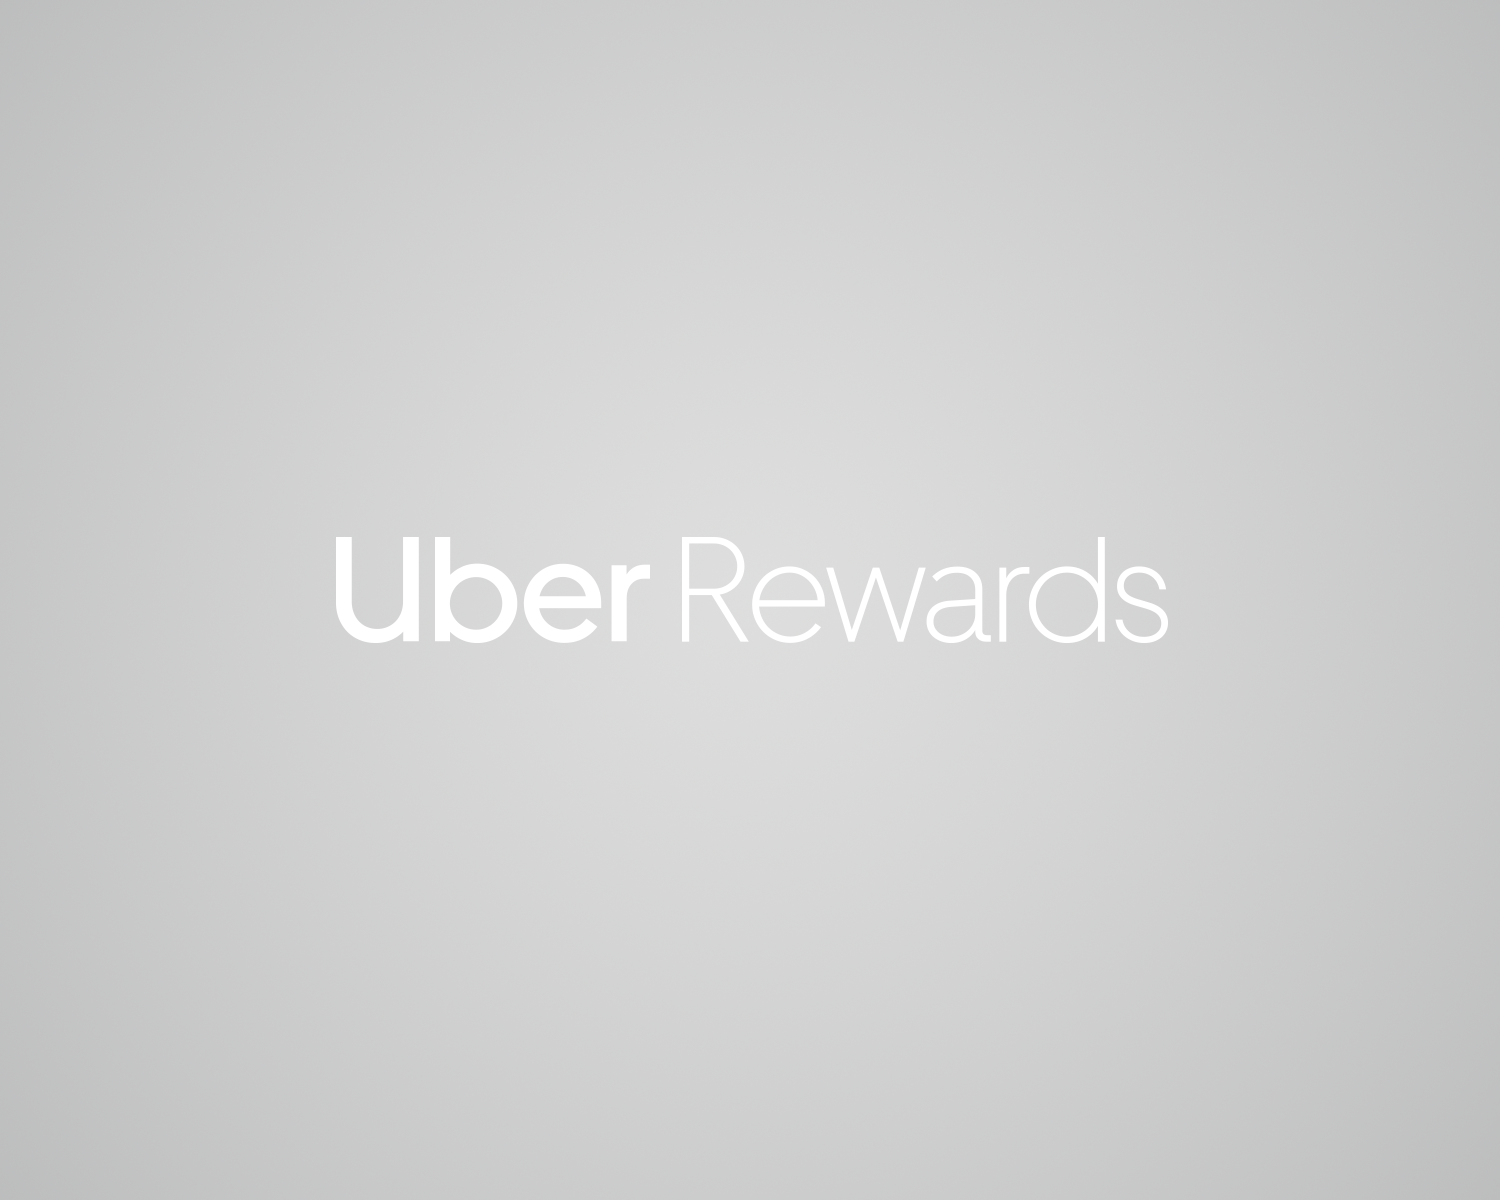 Uber Rewards